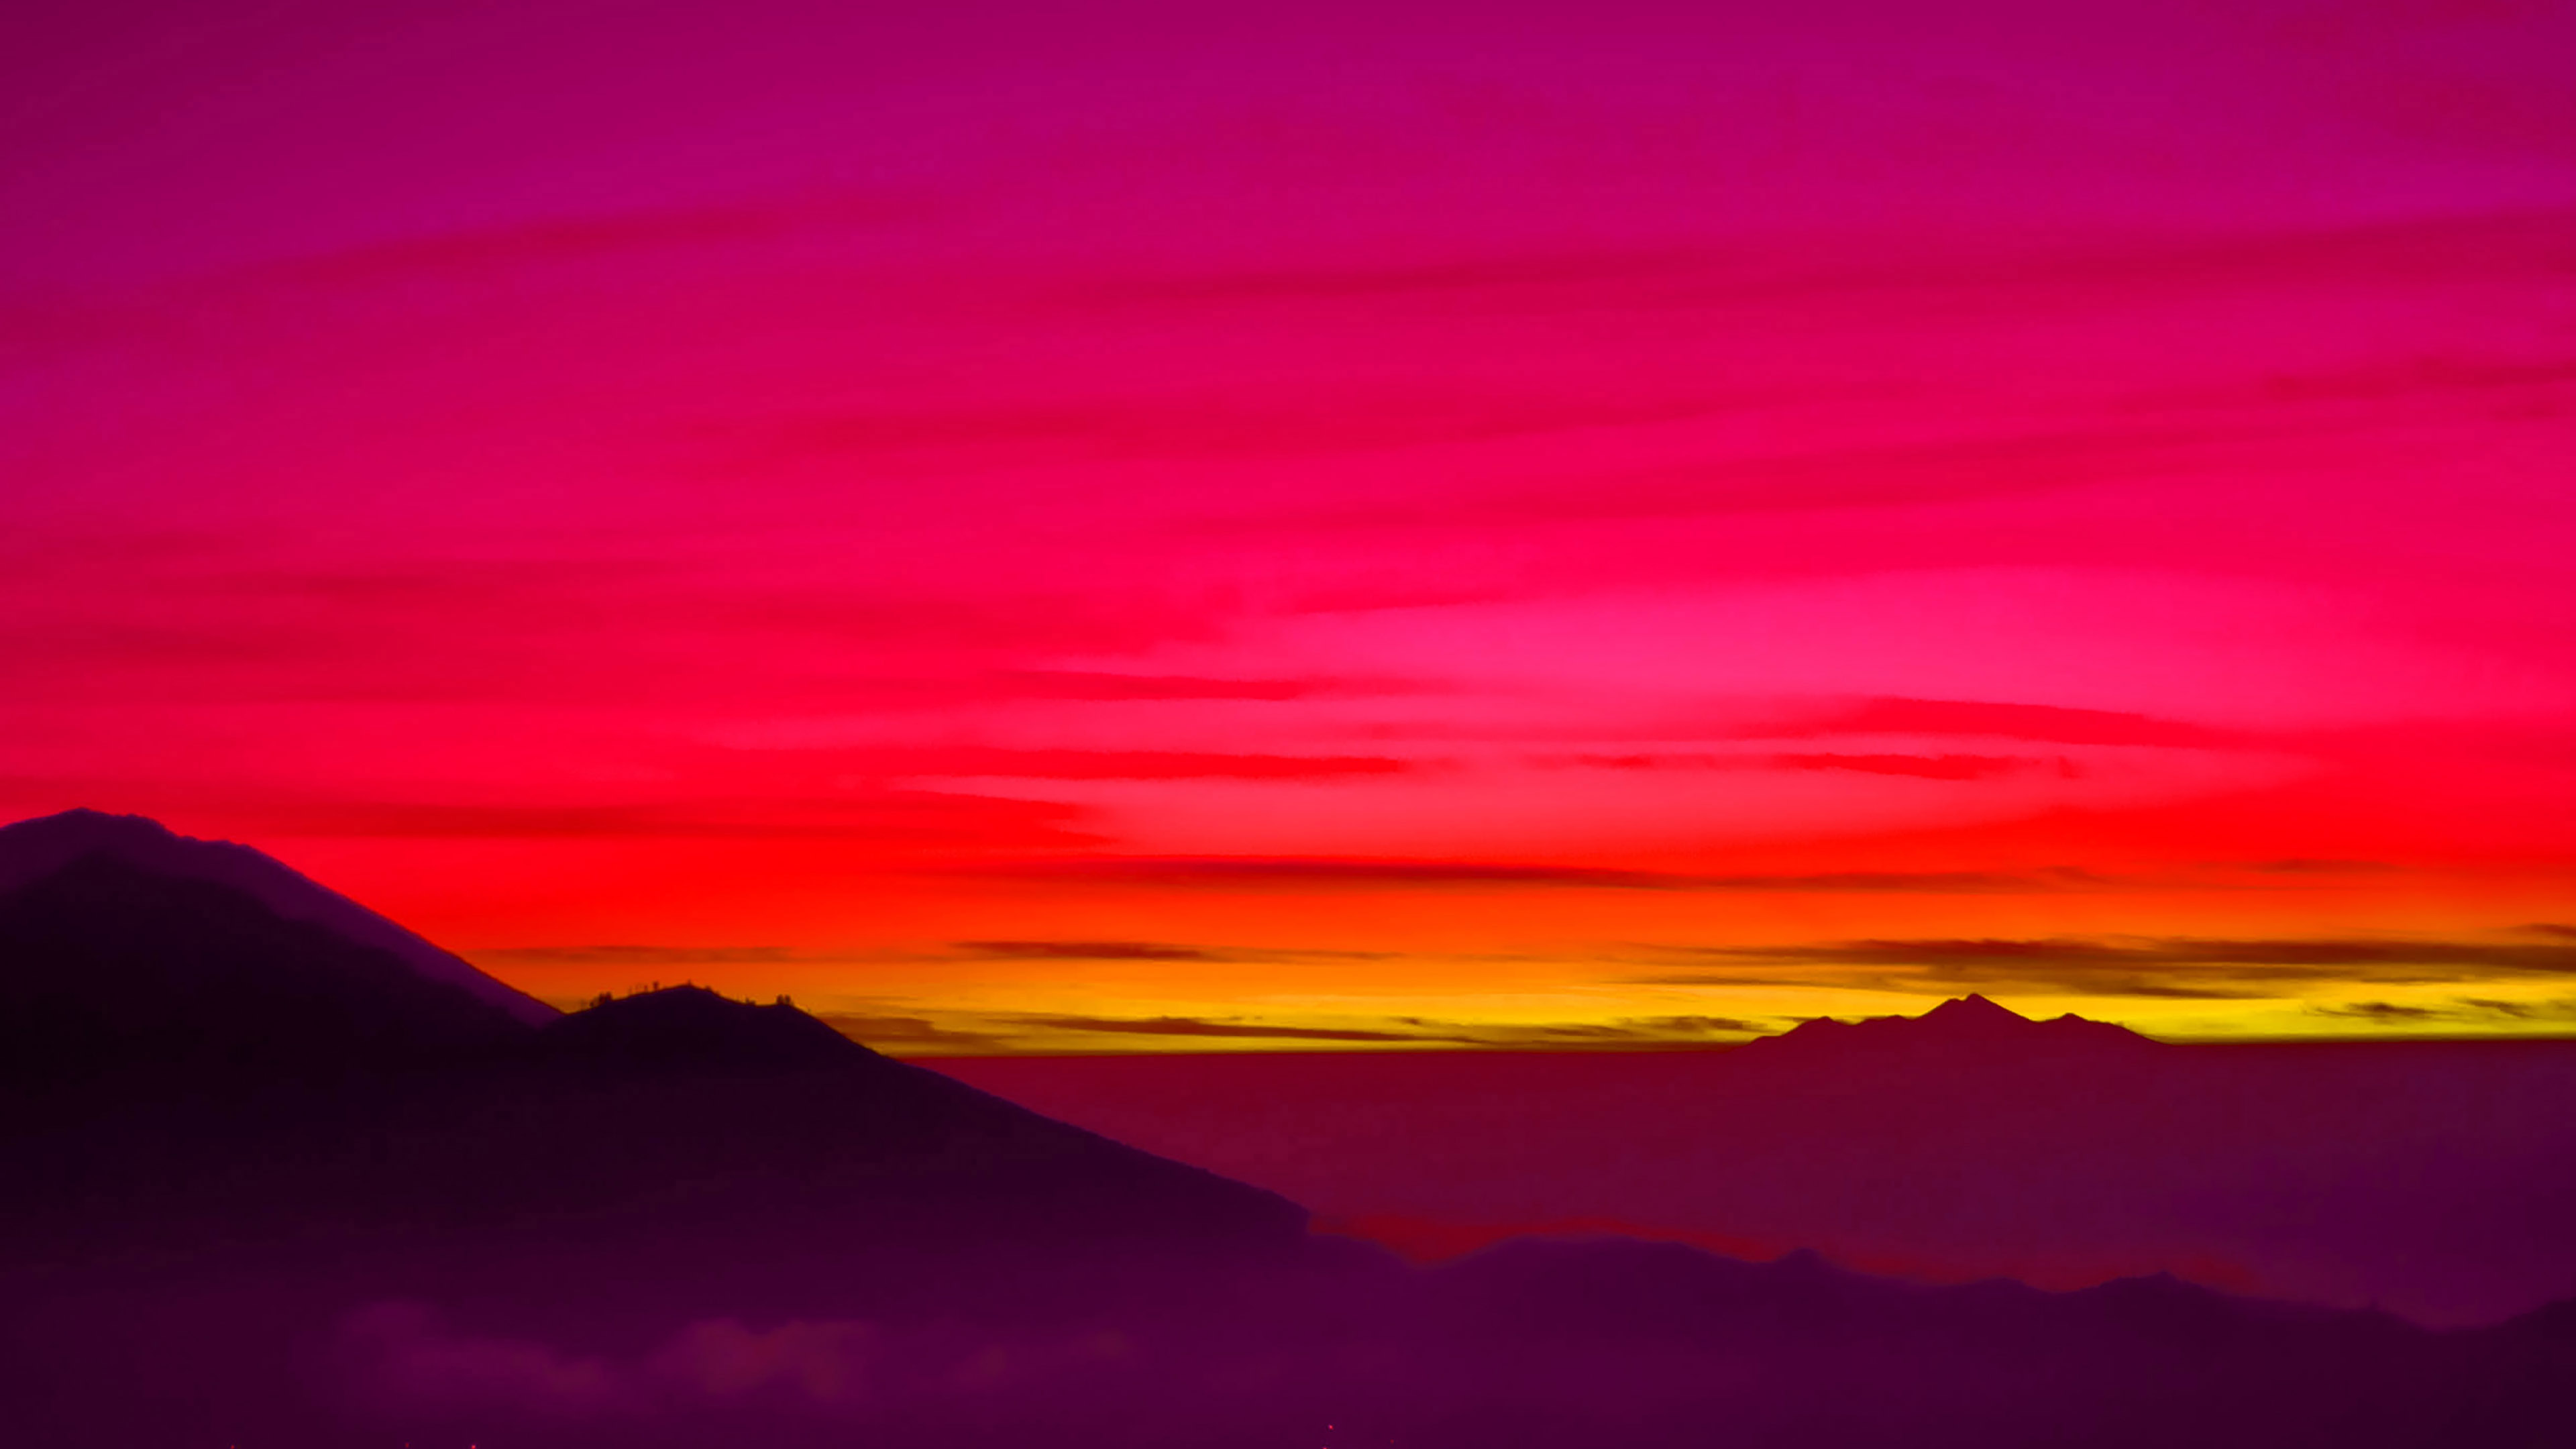 Fall Desktop Wallpaper For Mac Mc97 Wallpaper Red Balinese Dream Sea Mountain Sunset